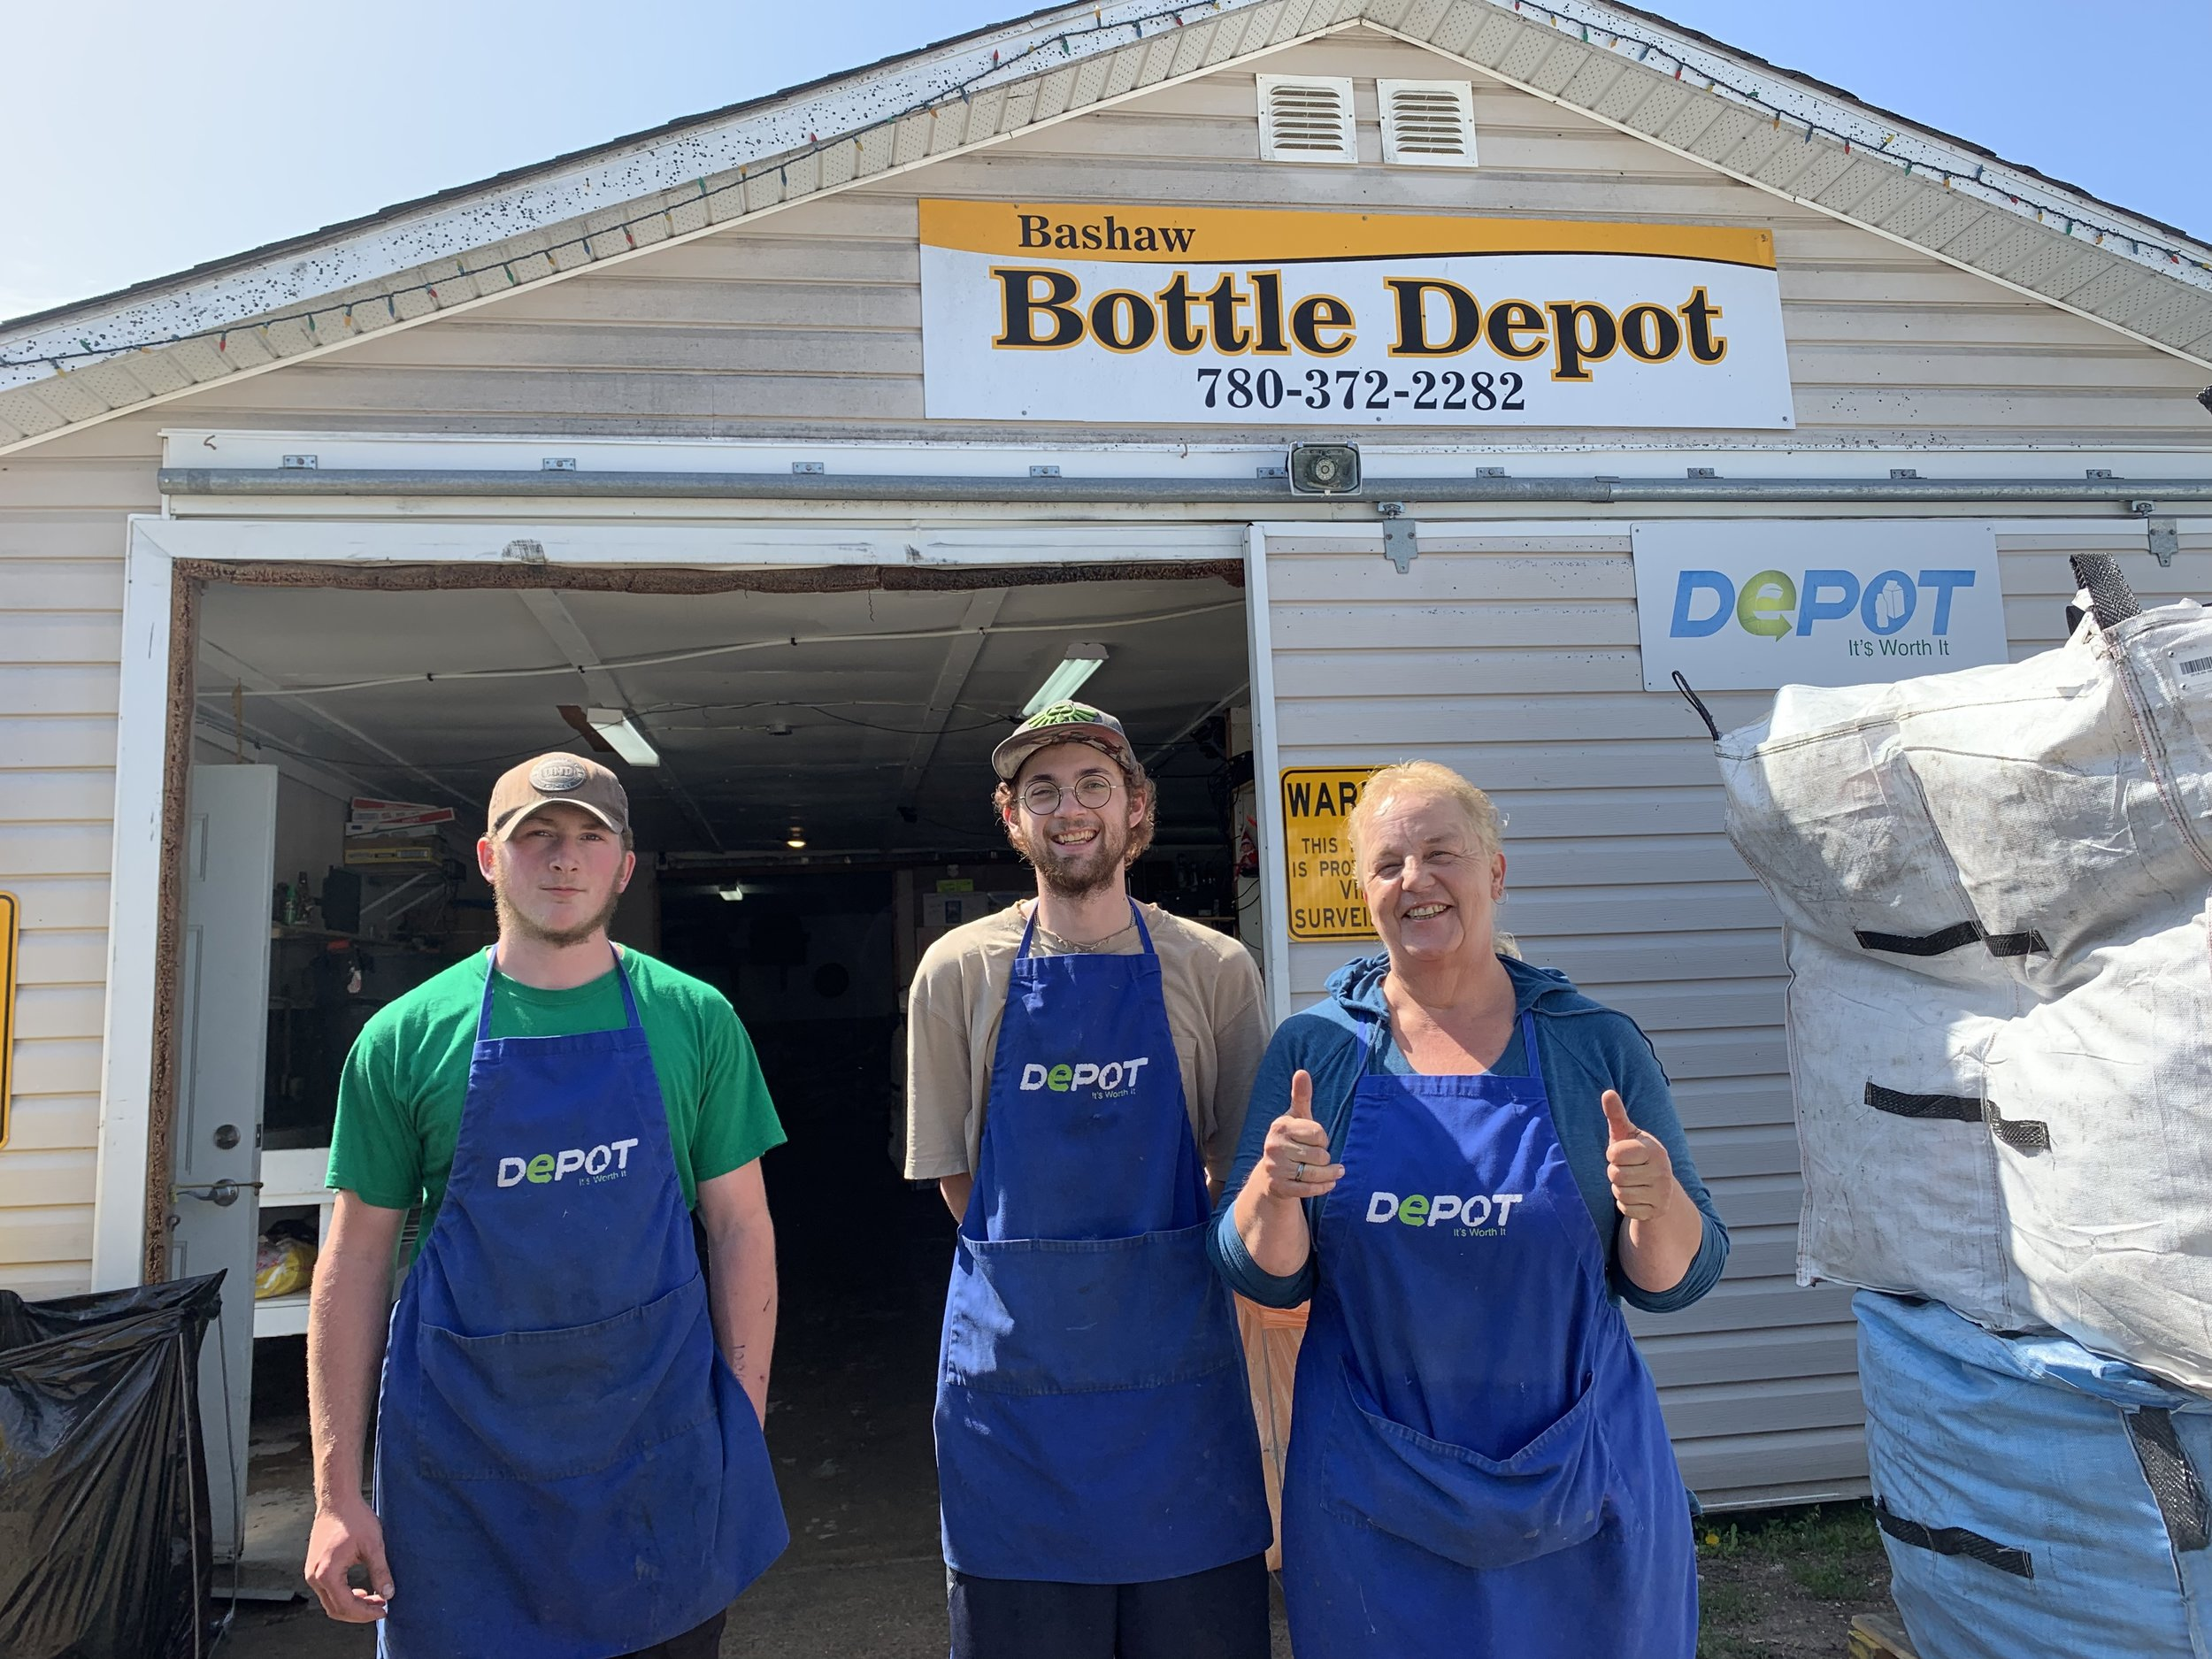 Bashaw Bottle Depot